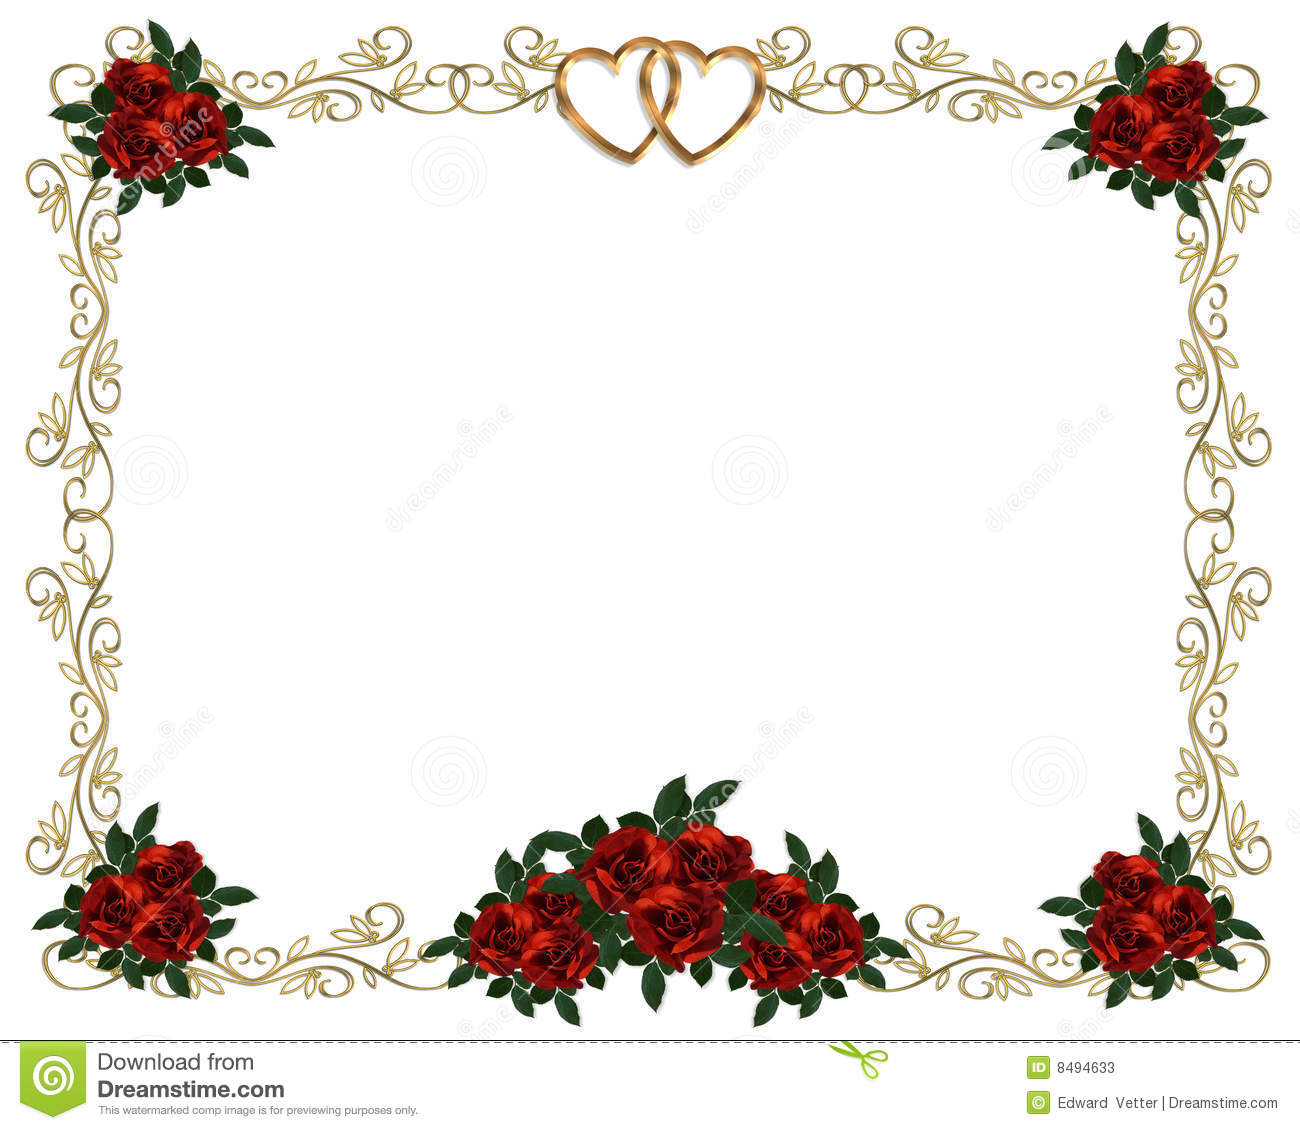 Wedding Invitation Clipart - Clipart Kid